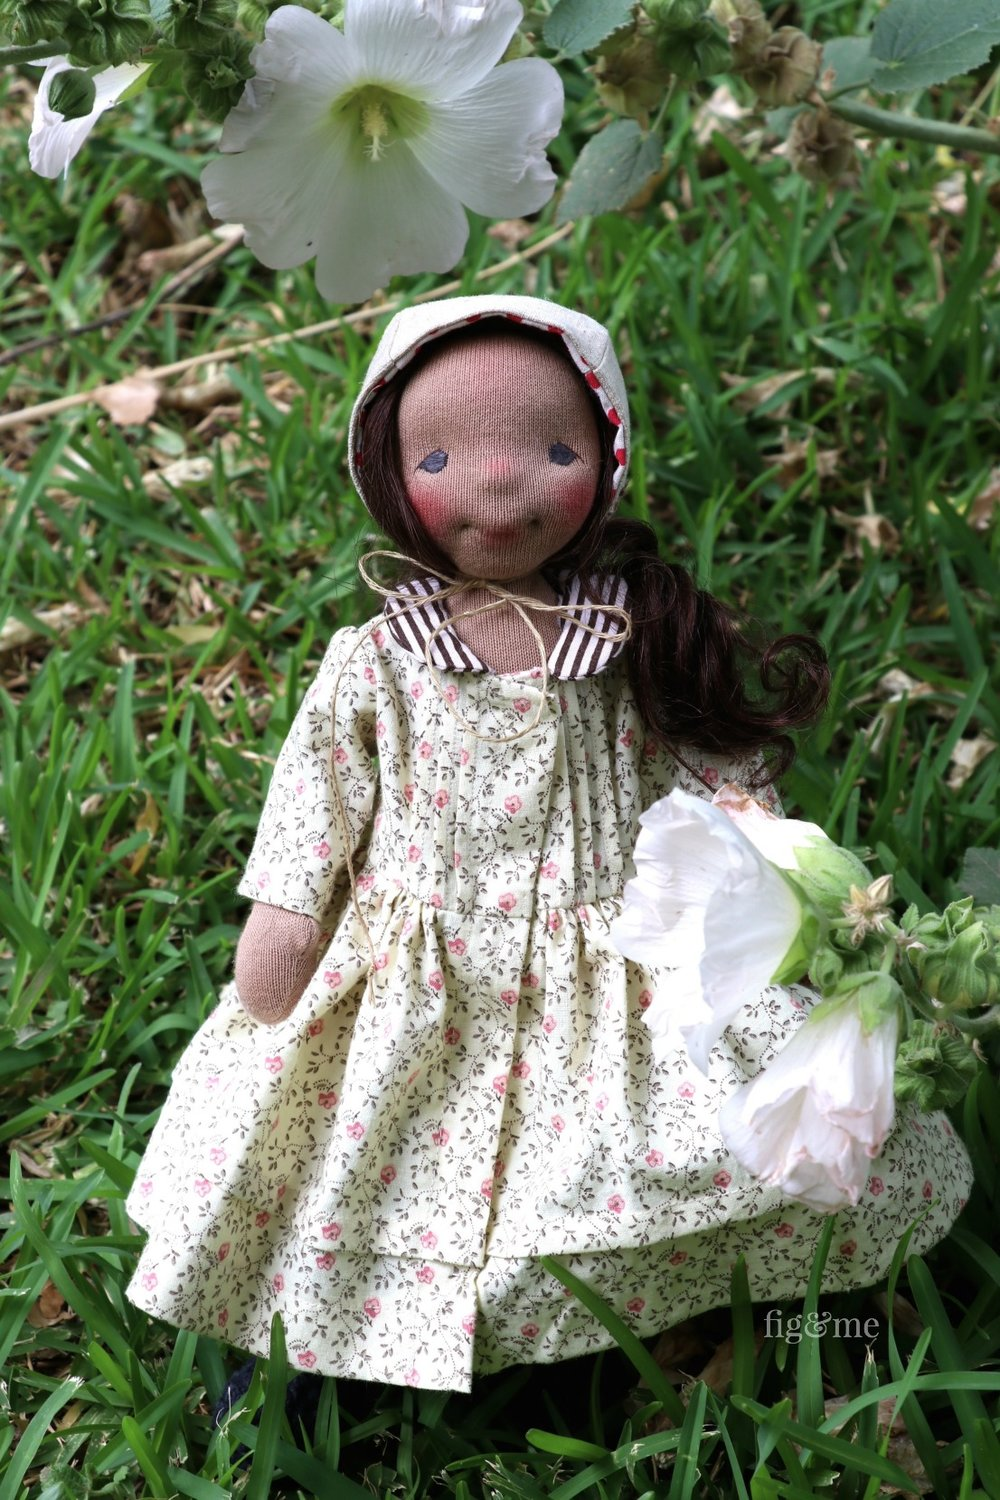 Polly, a natural fiber art doll by Fig and me.